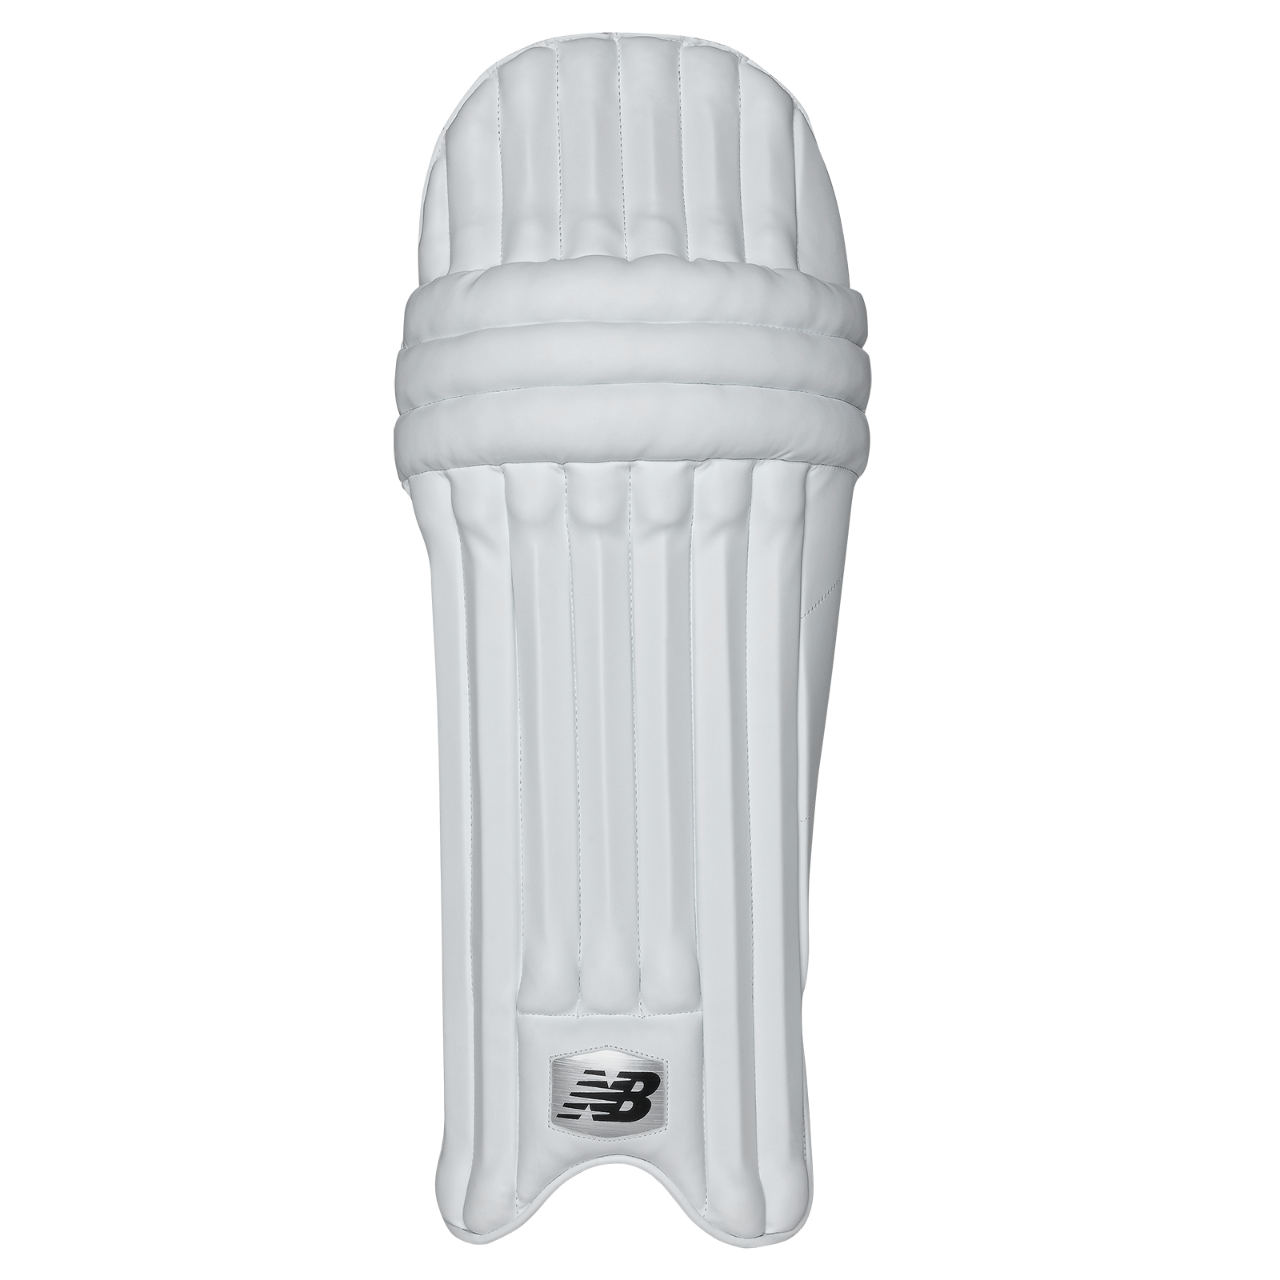 2021 New Balance TC 560 Batting Pads